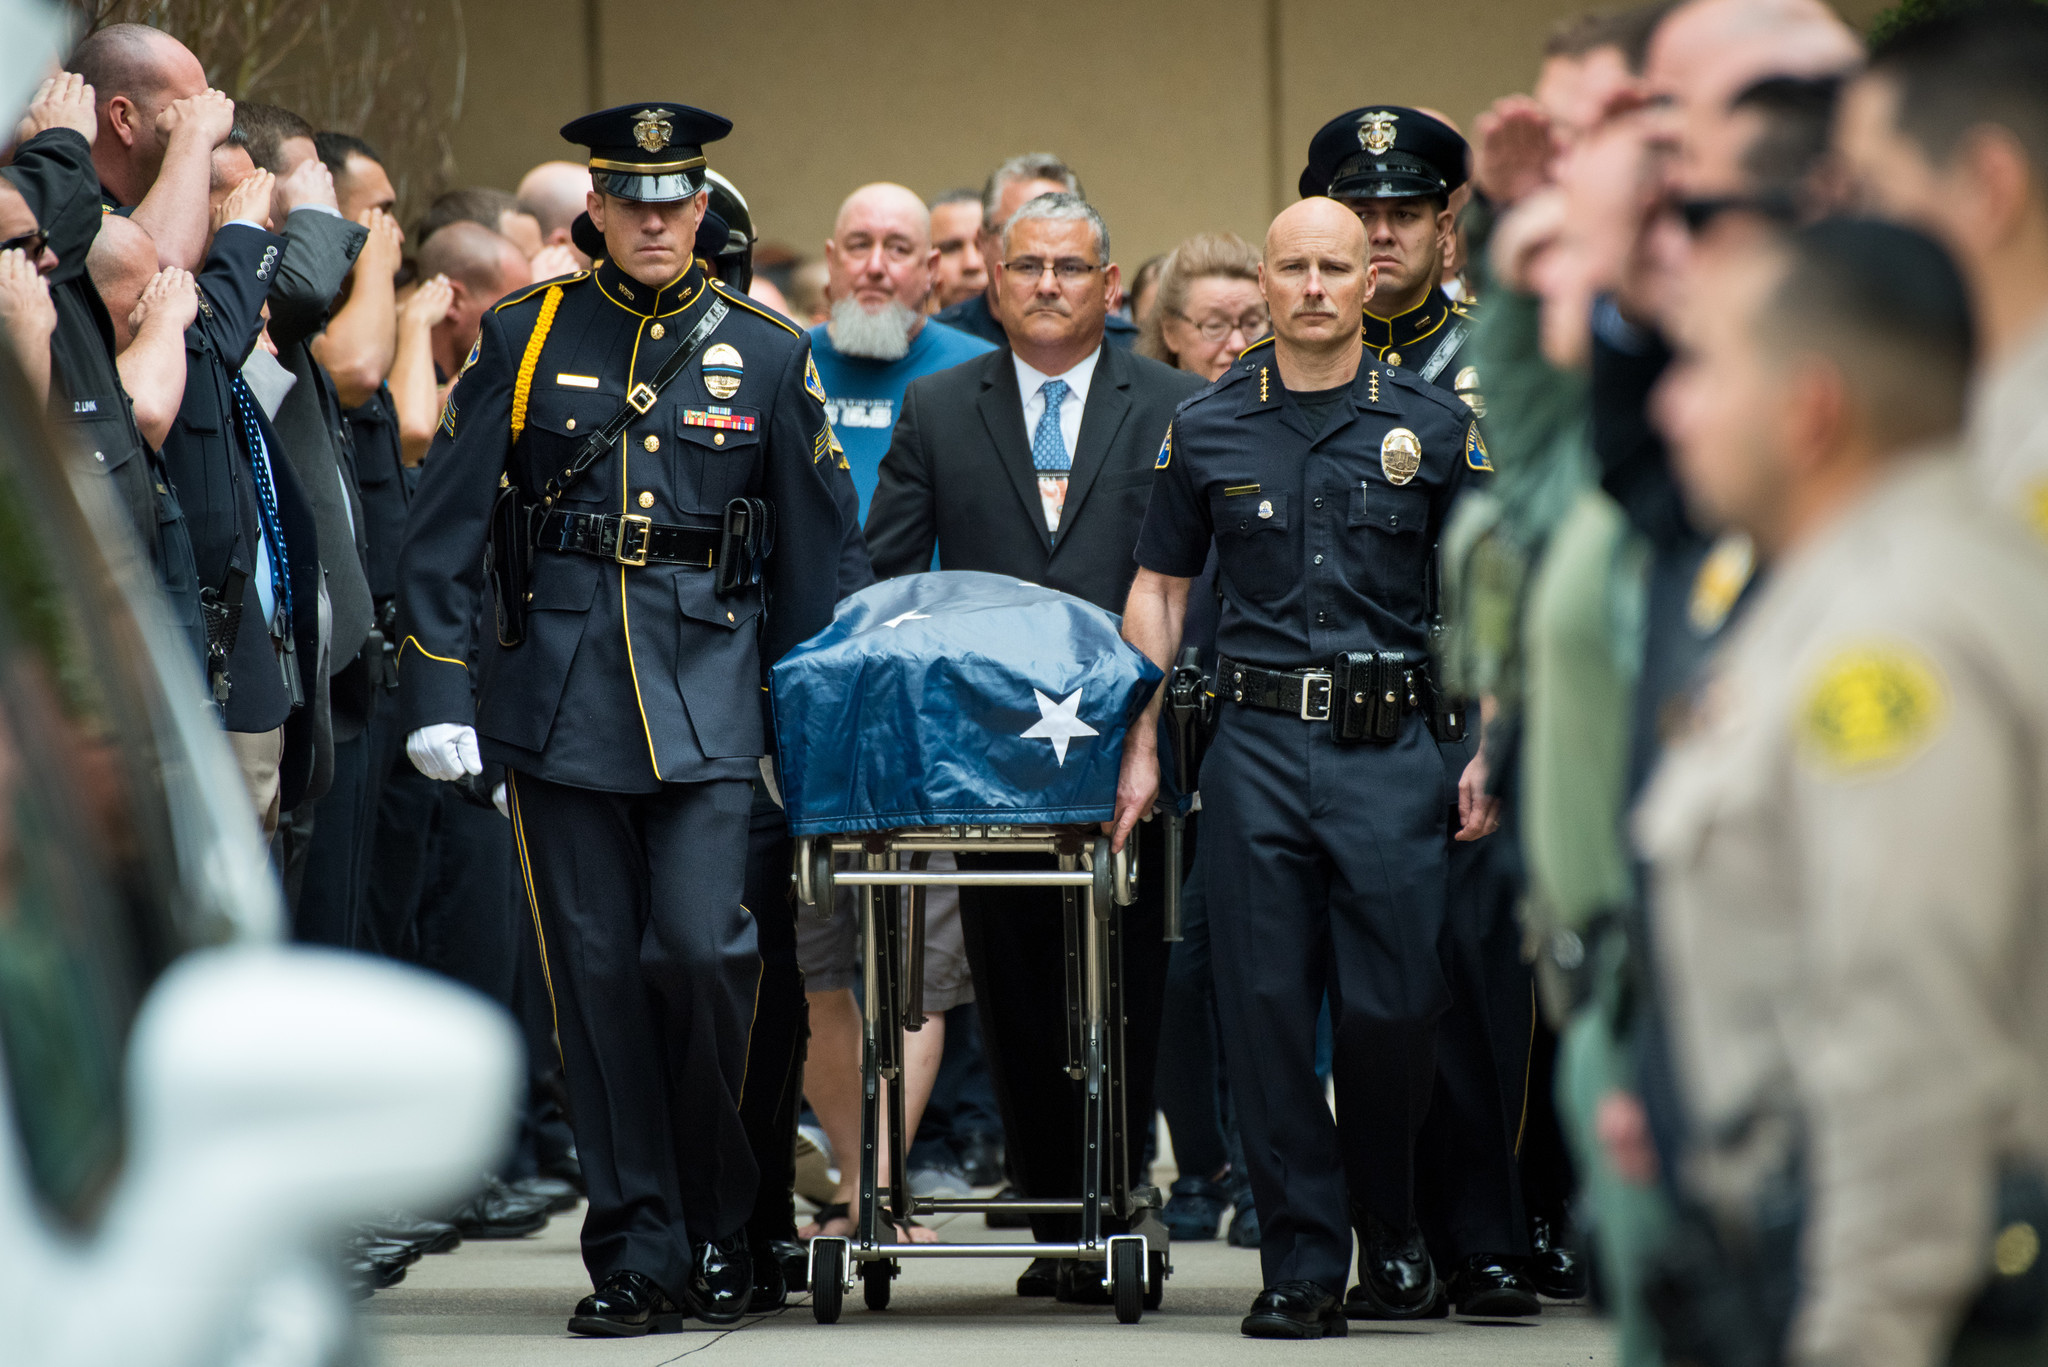 gang member accused of killing whittier cop had cycled in and out police chief says whittier officer s slaying shows danger of criminal justice reform but details are